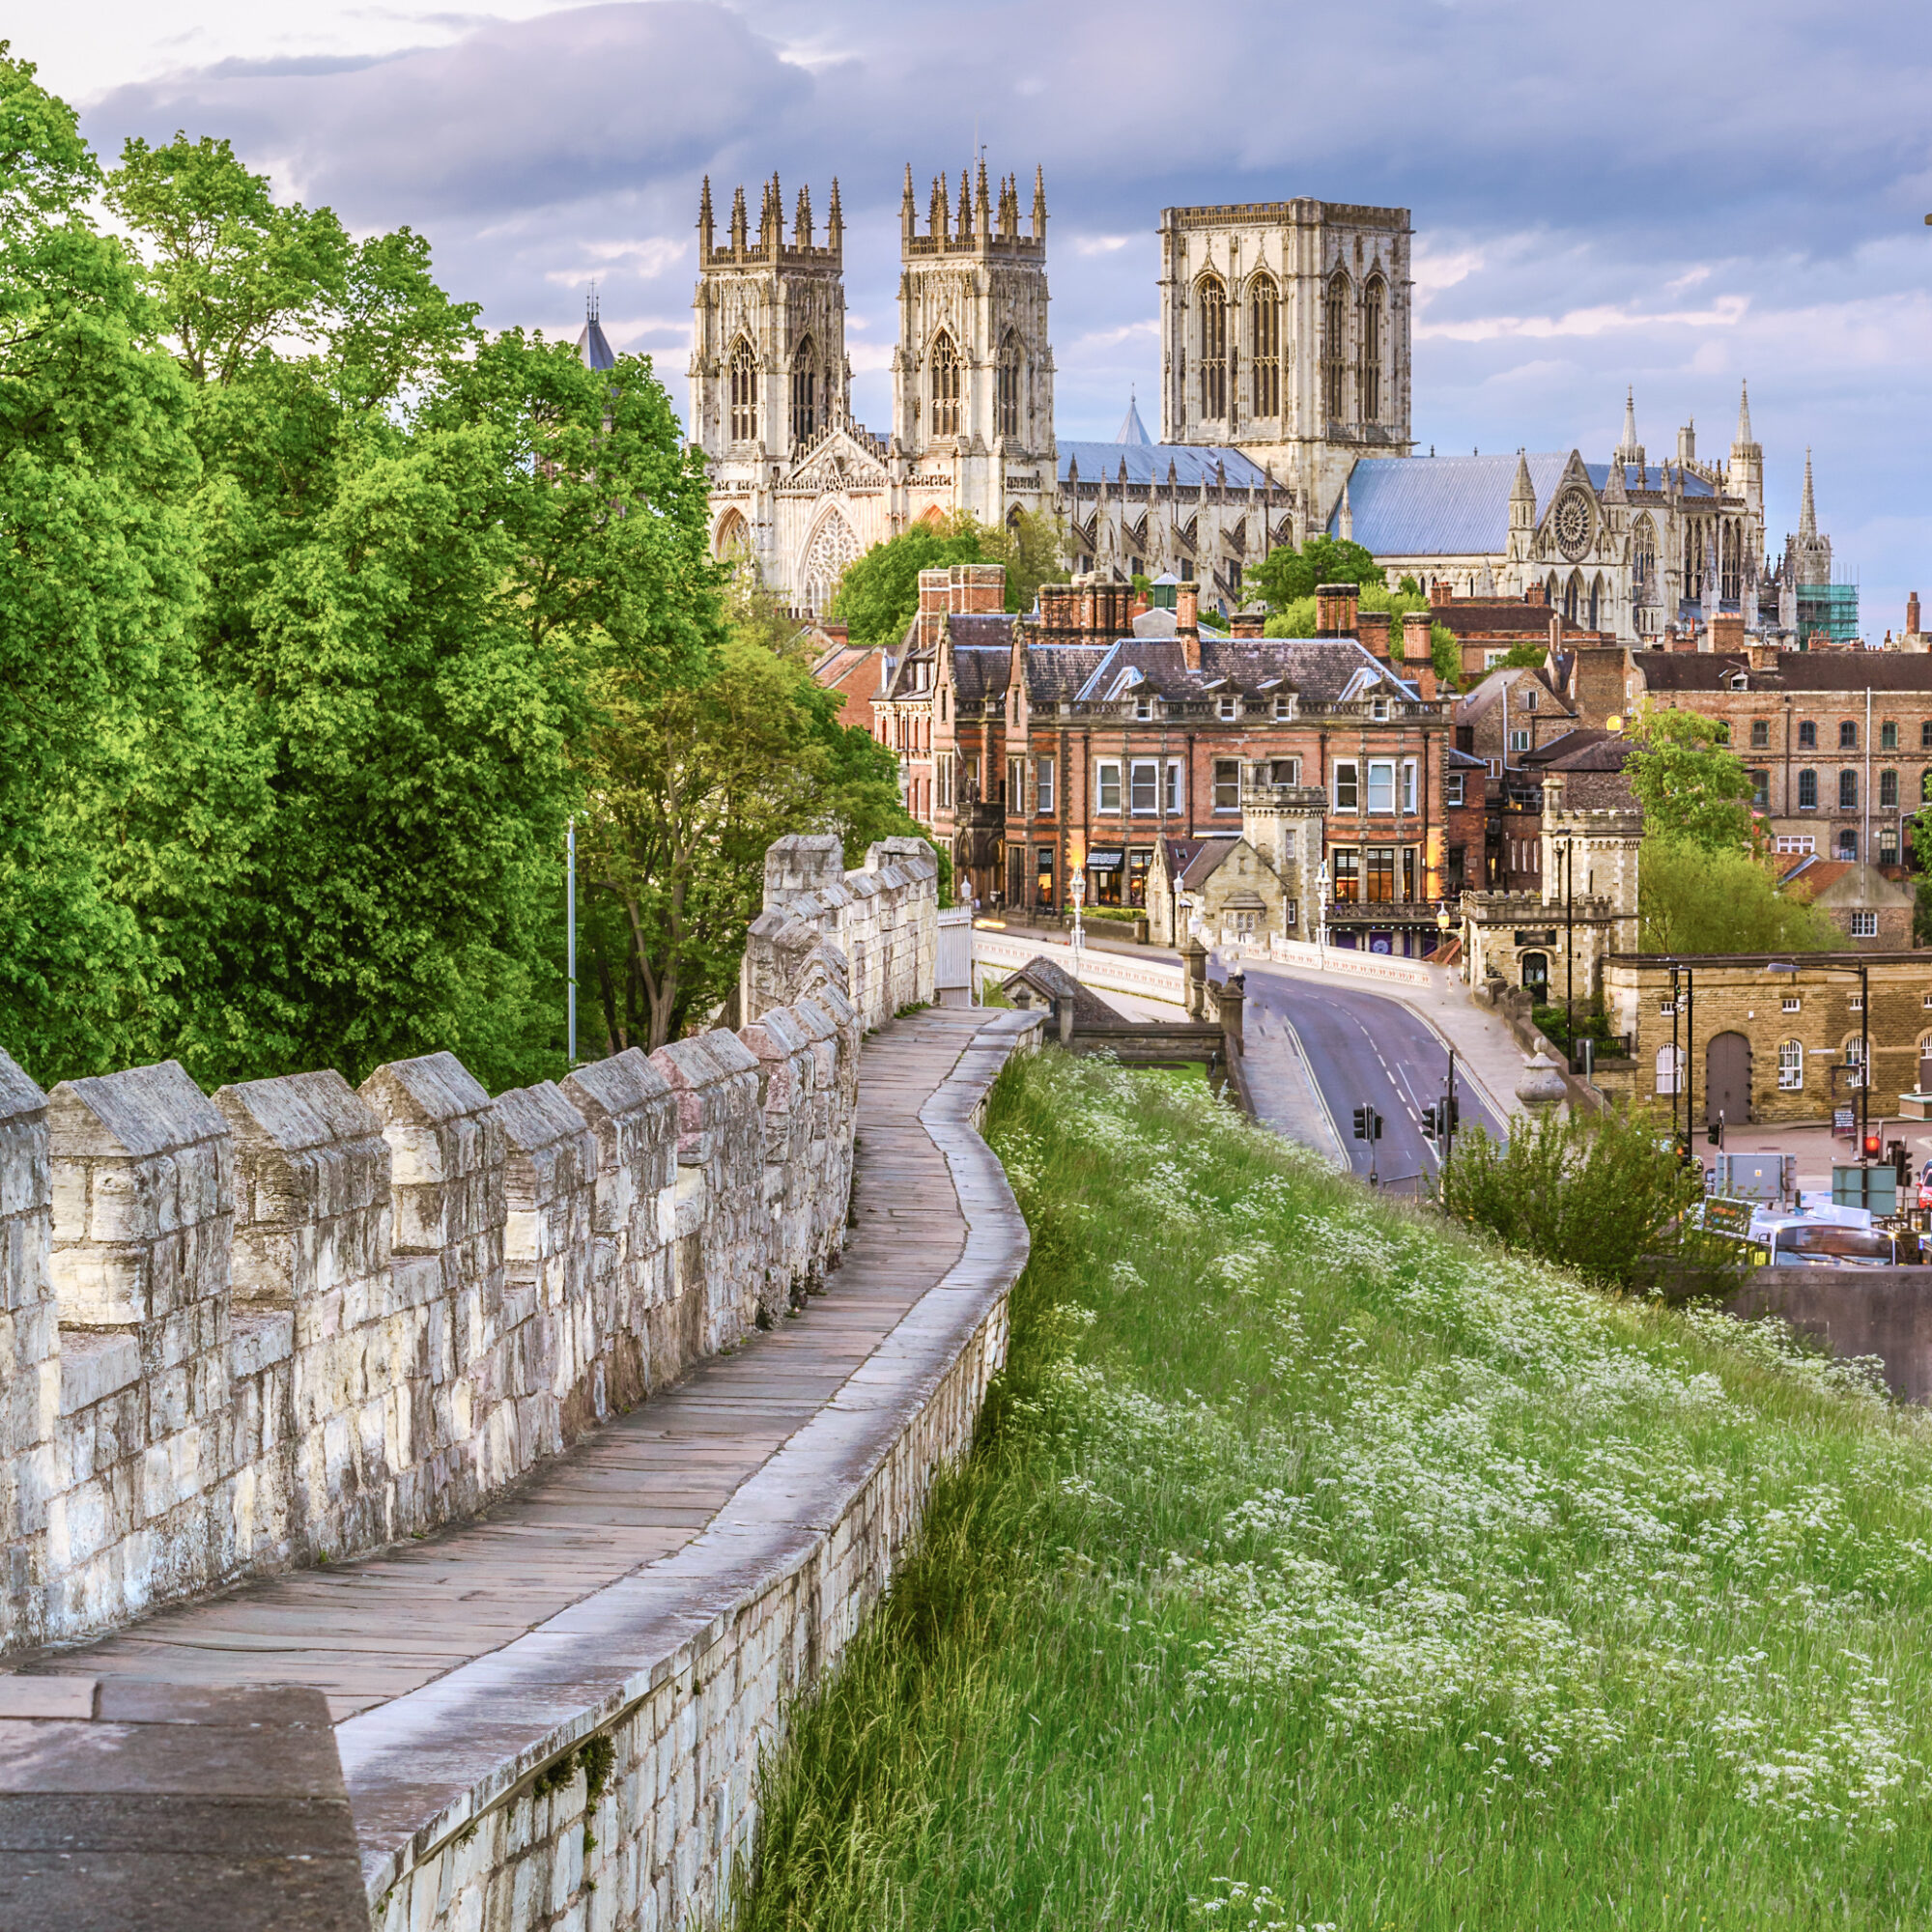 View of the York skyline from the Medieval Wall.